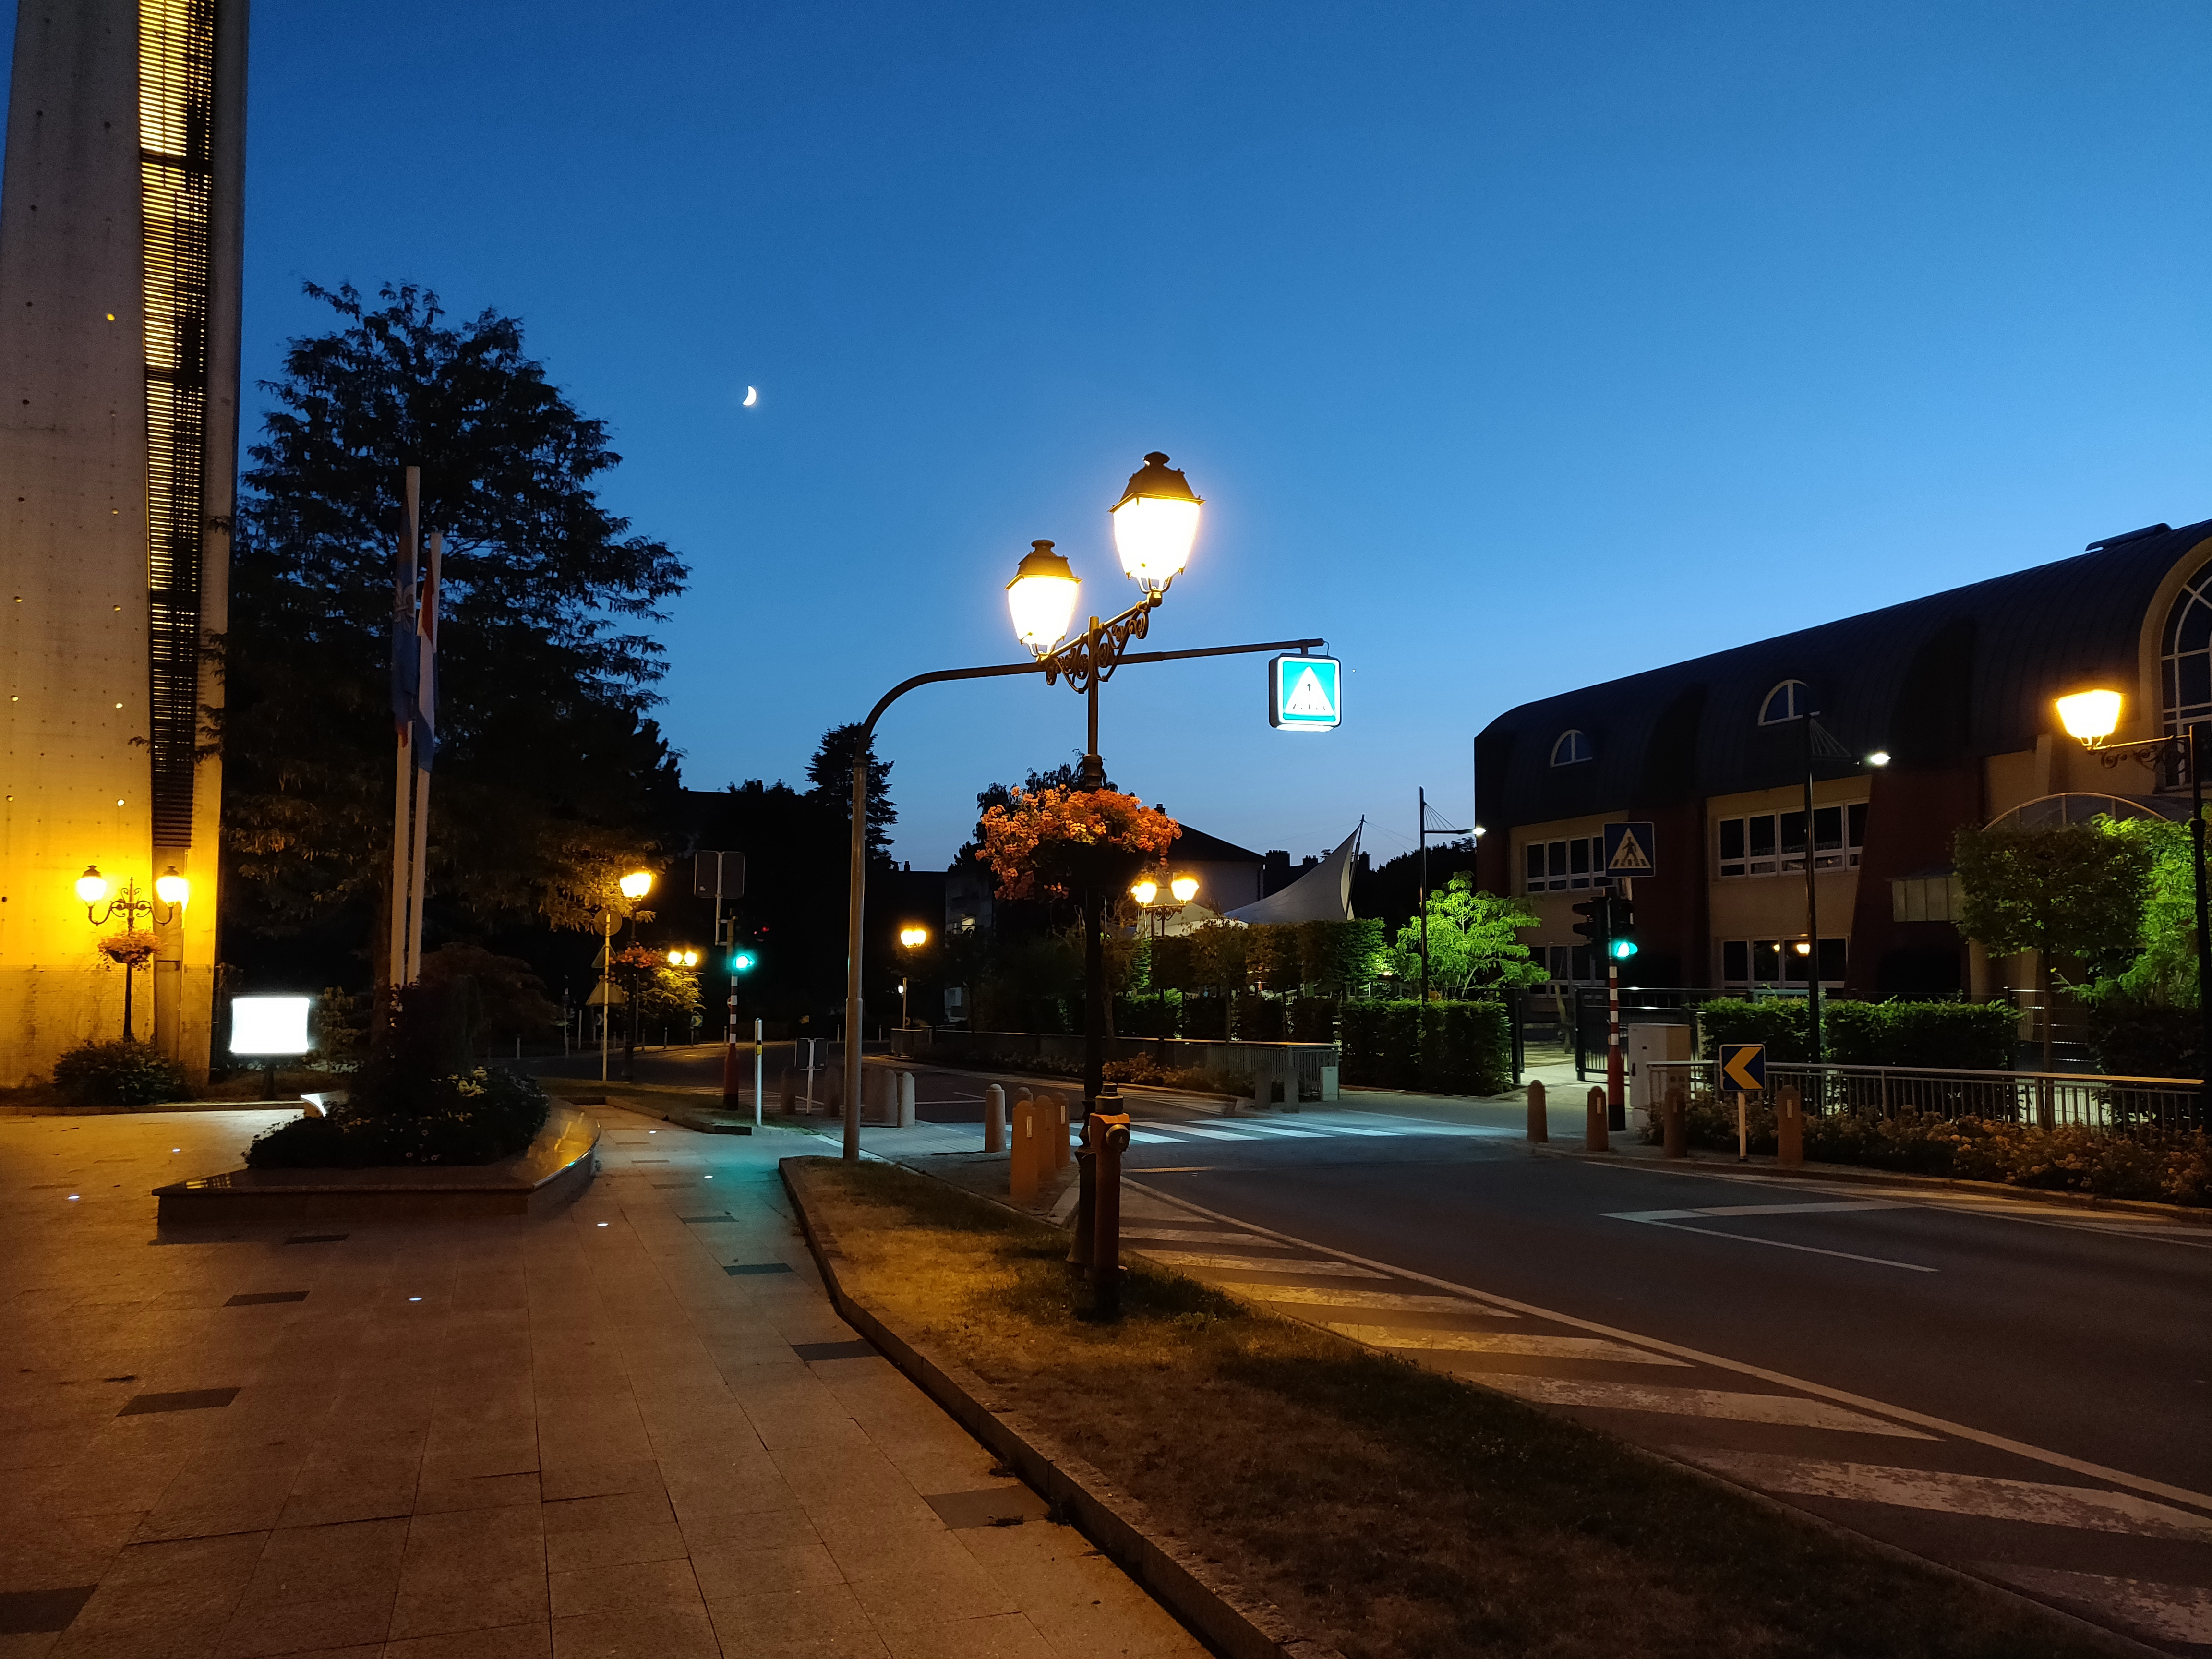 Camera - Low Light Evaluation - The OnePlus 6 Review: Among